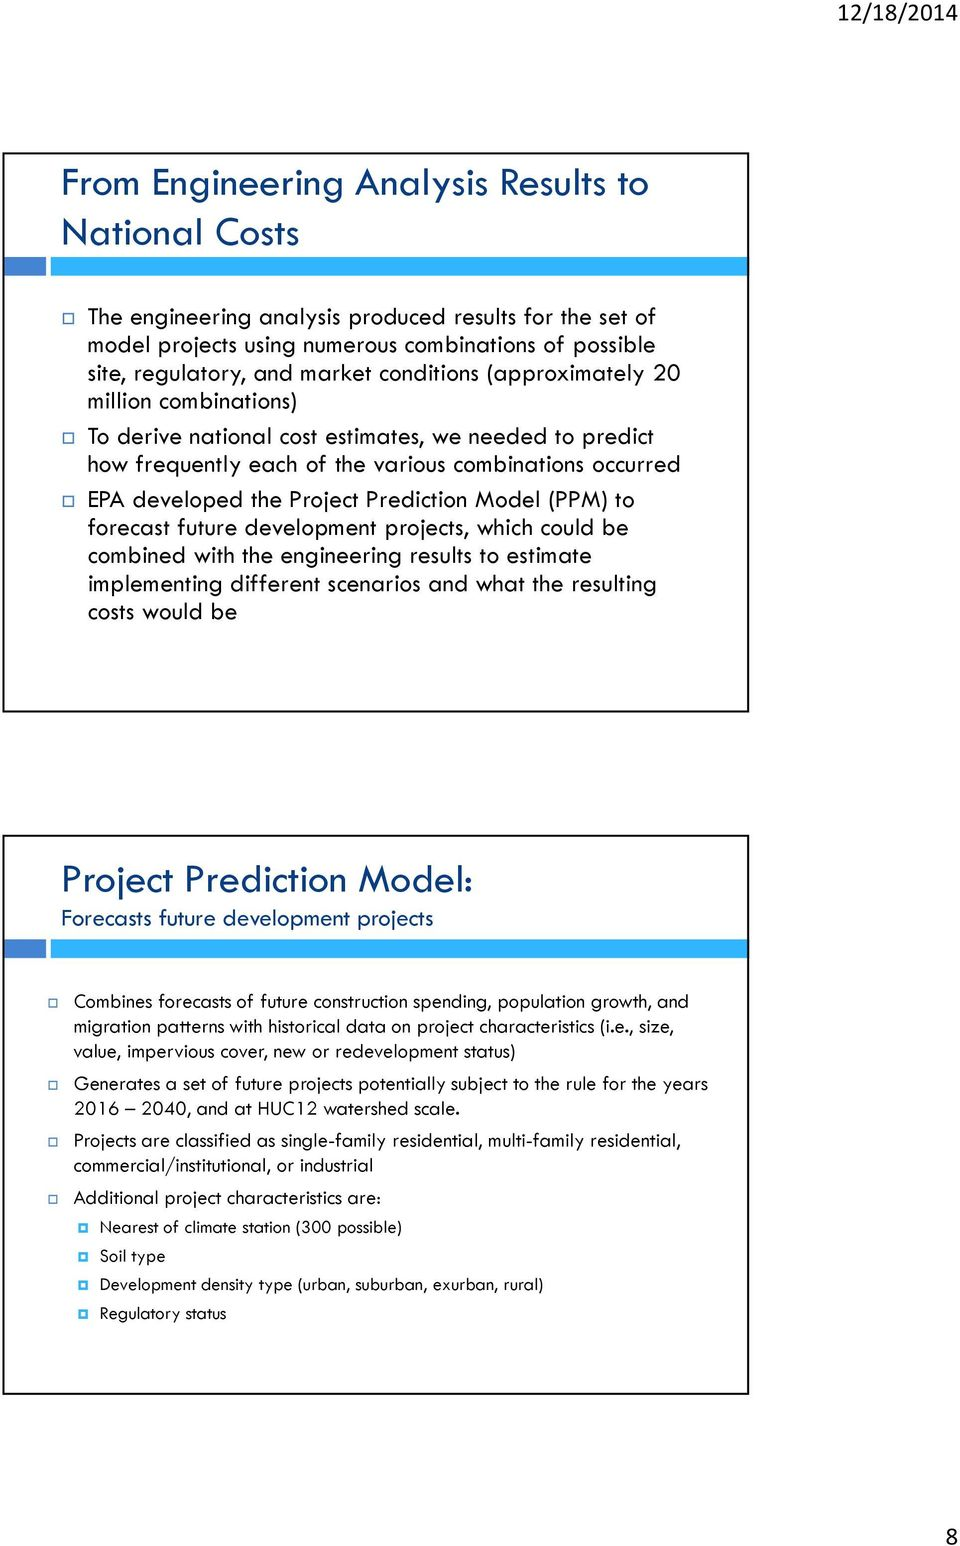 Prediction Model (PPM) to forecast future development projects, which could be combined with the engineering results to estimate implementing different scenarios and what the resulting costs would be